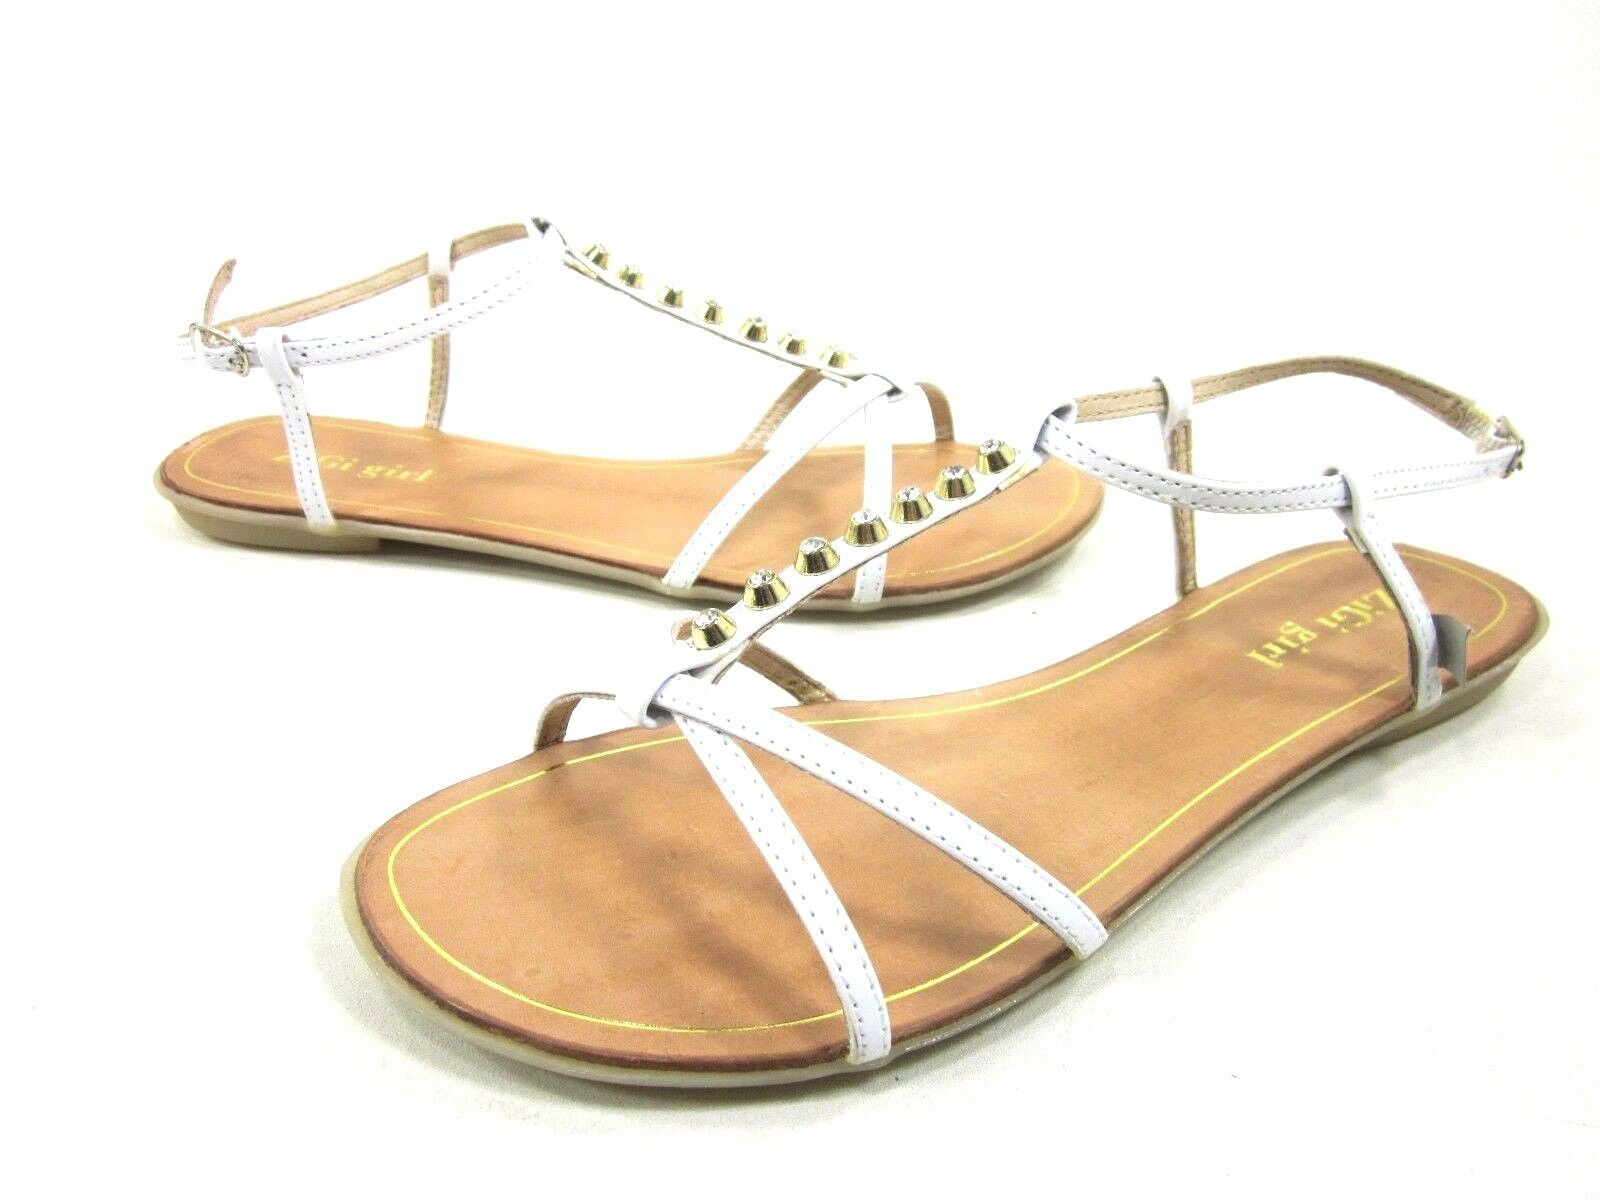 ZIGIny WOMEN'S ADORABLE FASHION CASUAL MEDIUM,NEW THONG SANDALS,WHITE FX,US MEDIUM,NEW CASUAL 0eede9